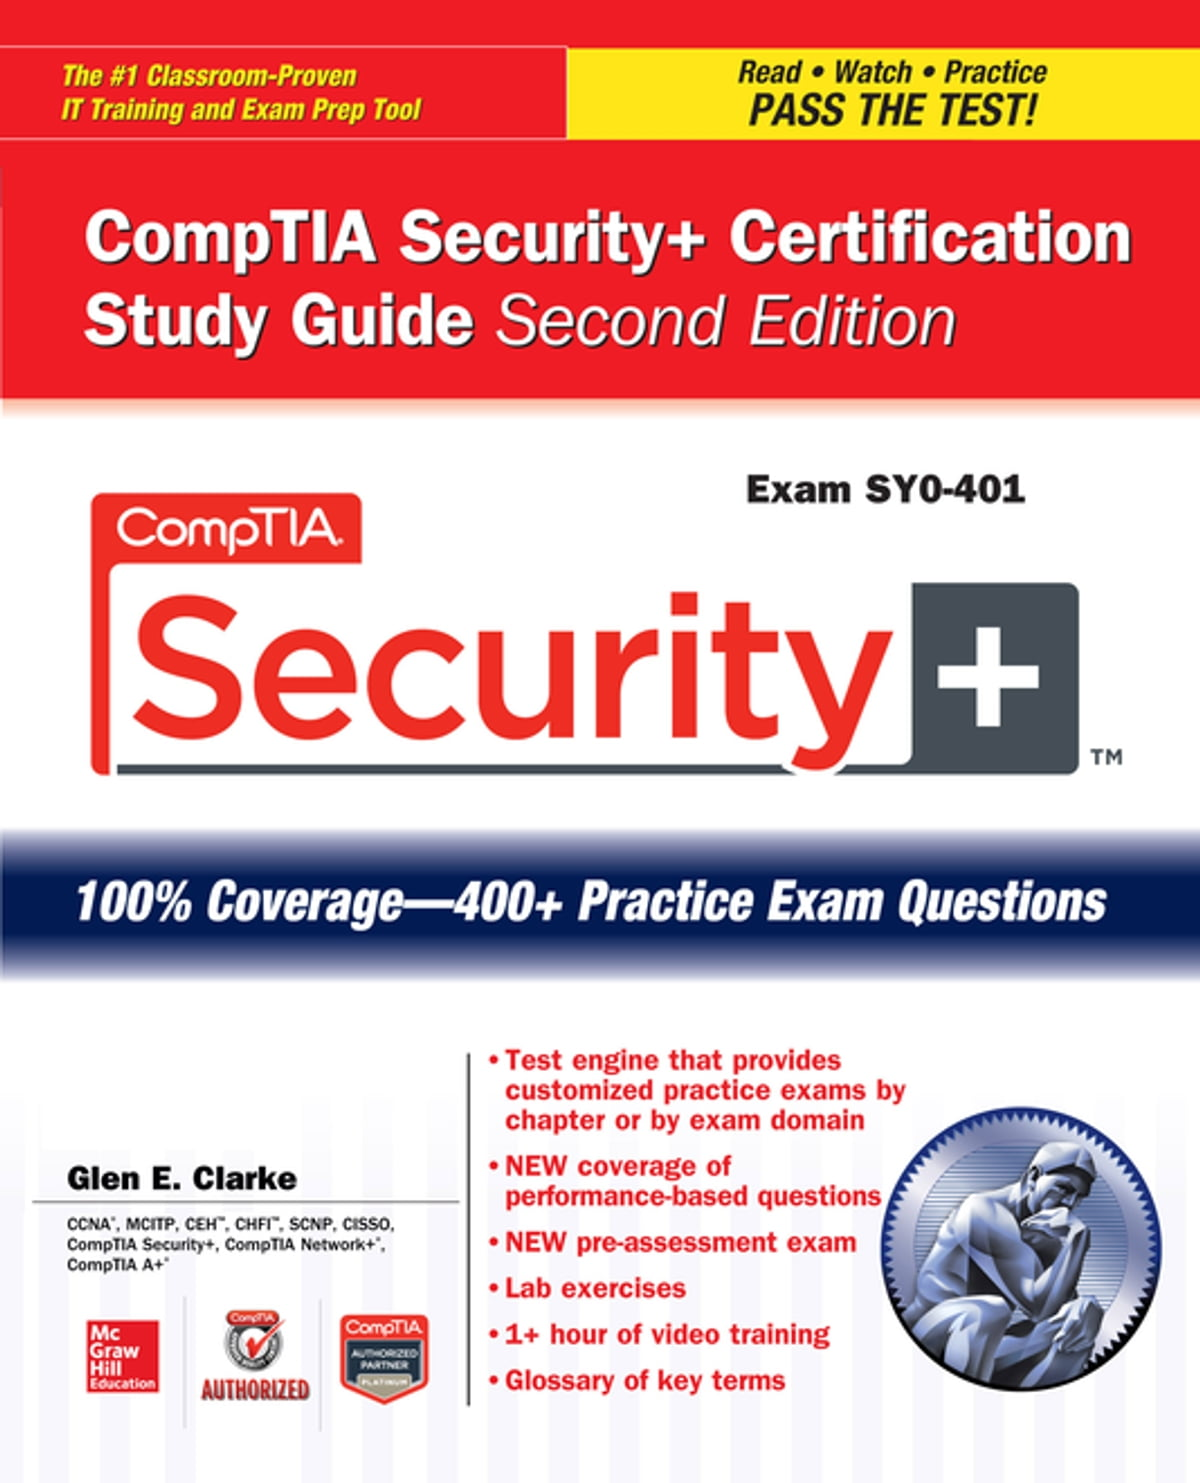 Comptia security certification study guide second edition exam comptia security certification study guide second edition exam sy0 401 ebook by glen e clarke 9780071841276 rakuten kobo 1betcityfo Gallery